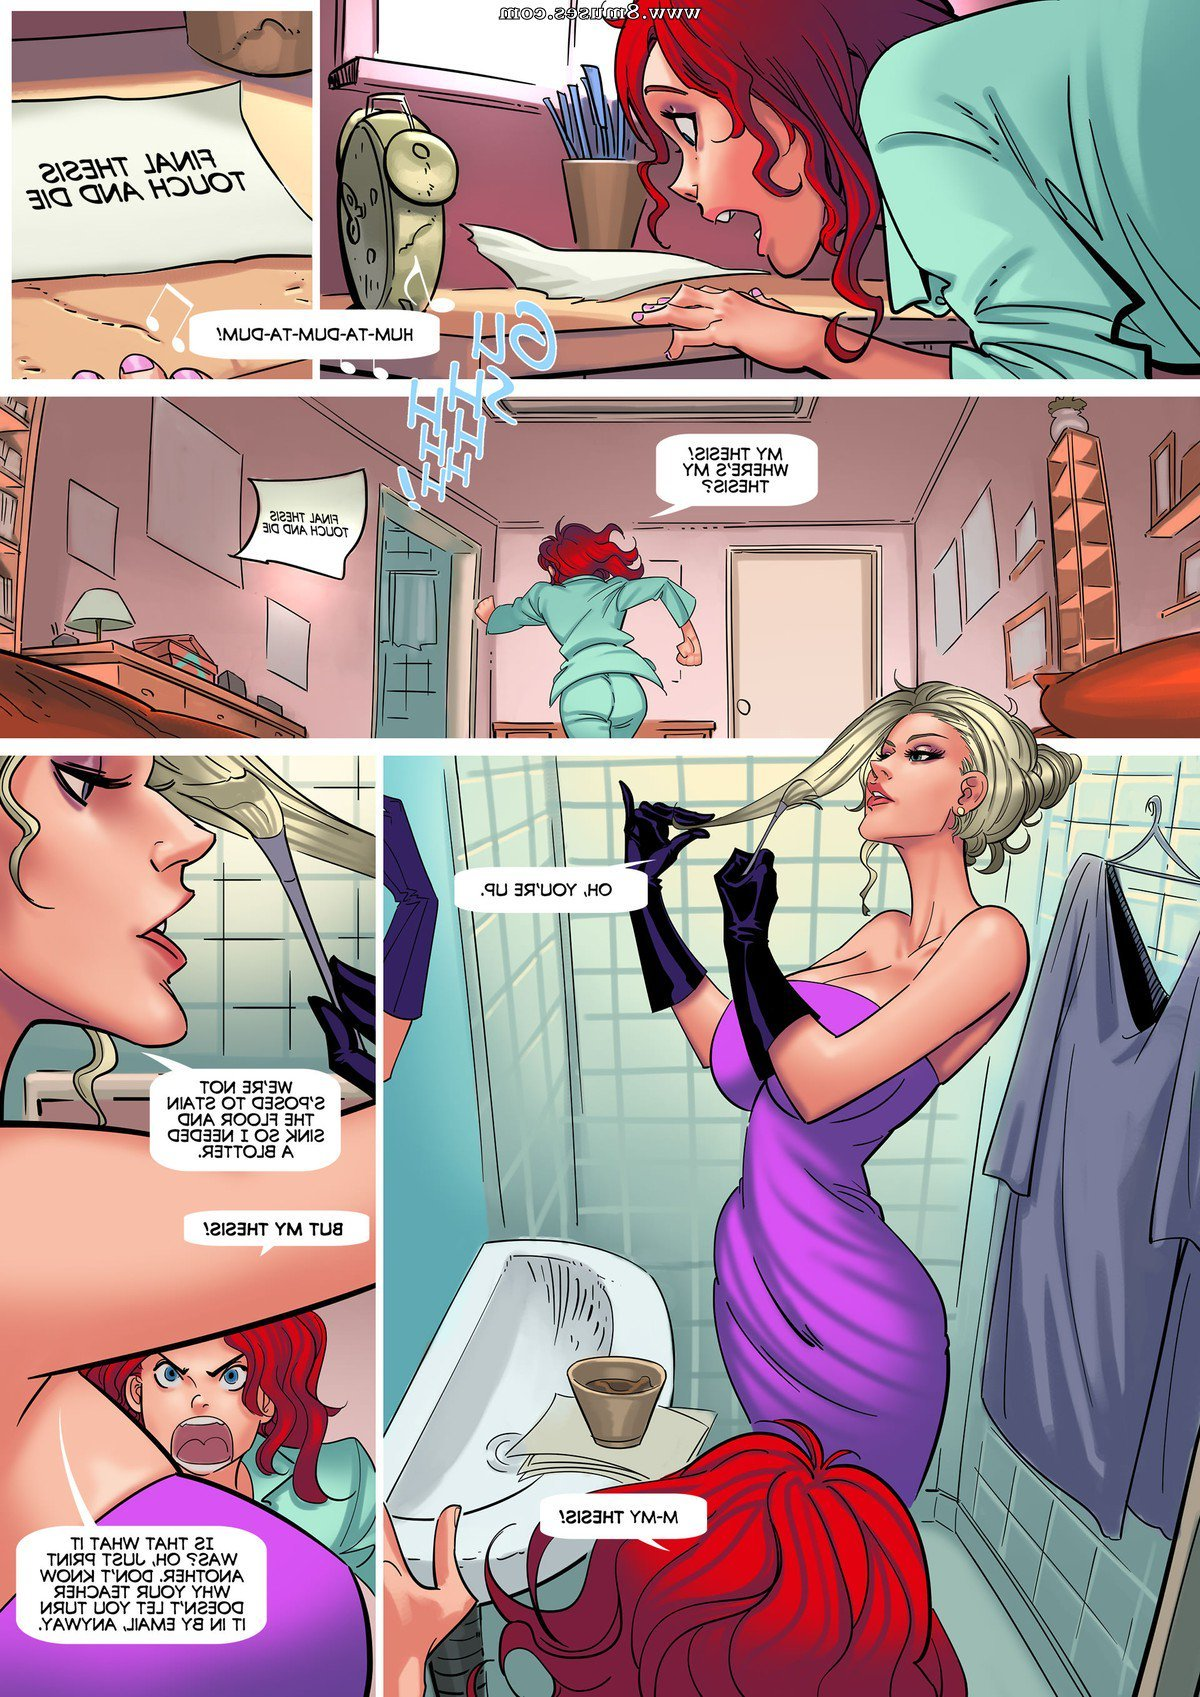 Giantess-Fan-Comics/Worst-Day-Ever/Issue-1 Worst_Day_Ever_-_Issue_1_5.jpg